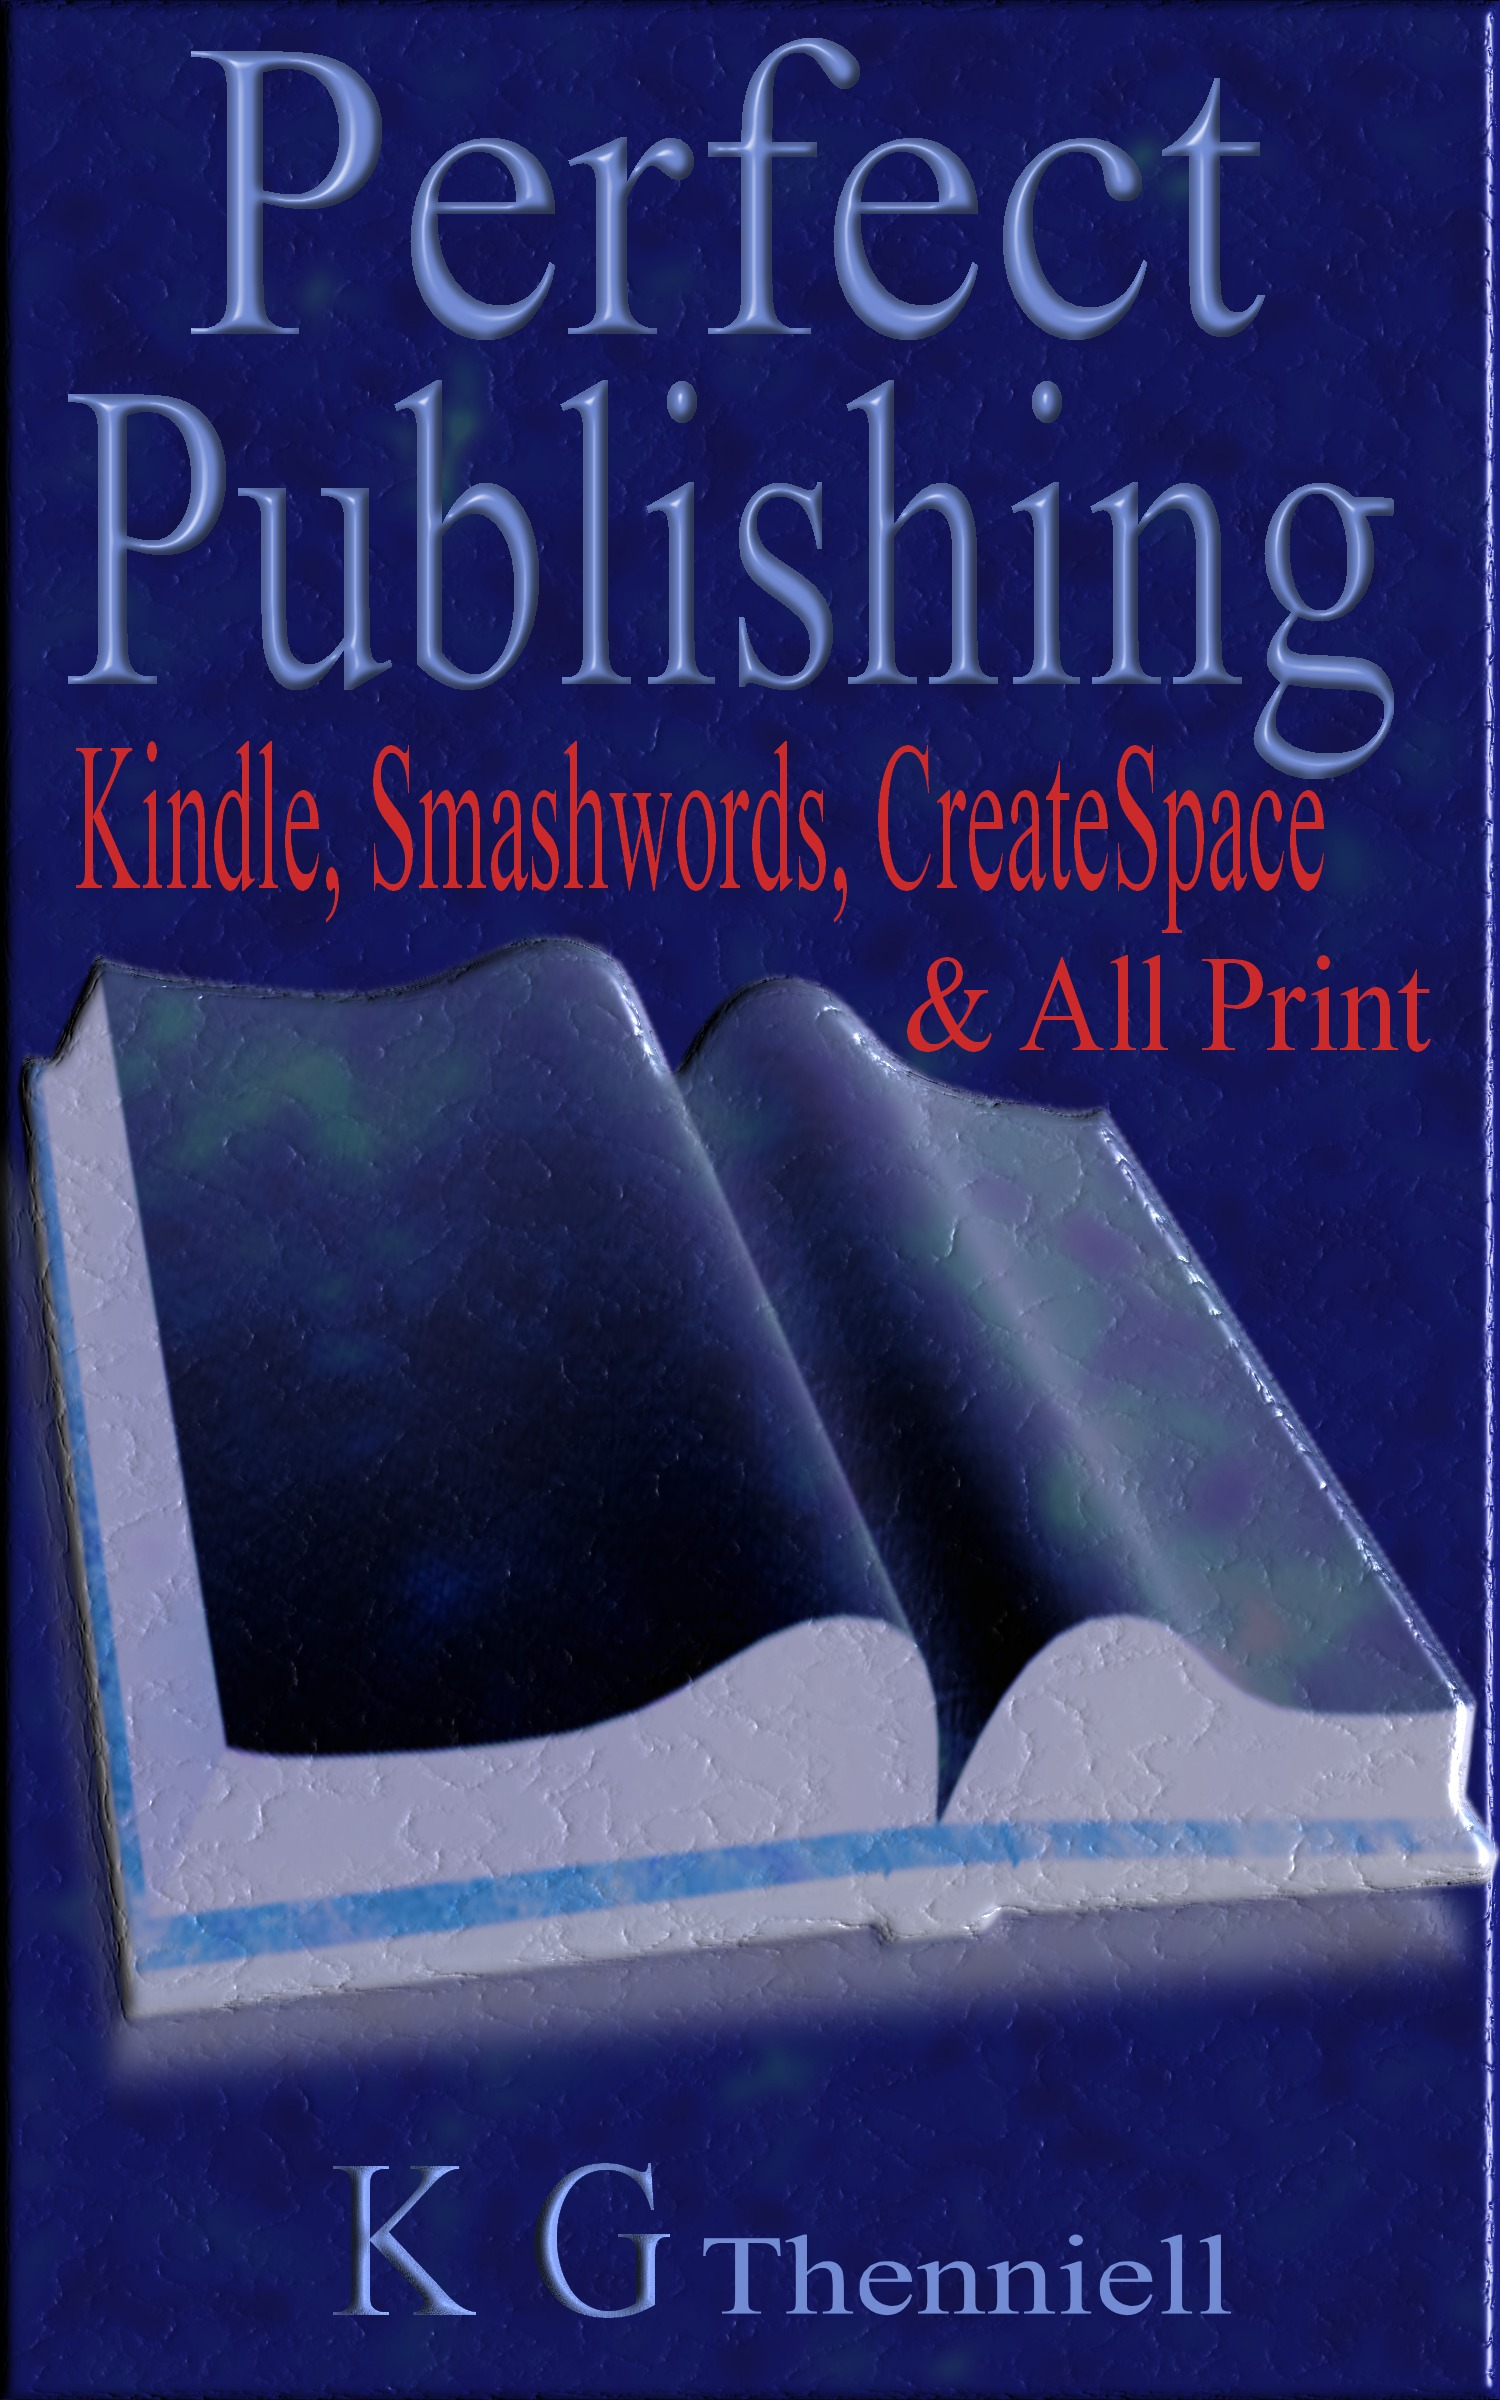 Perfect Publishing: Kindle, Smashwords, CreateSpace & All Print